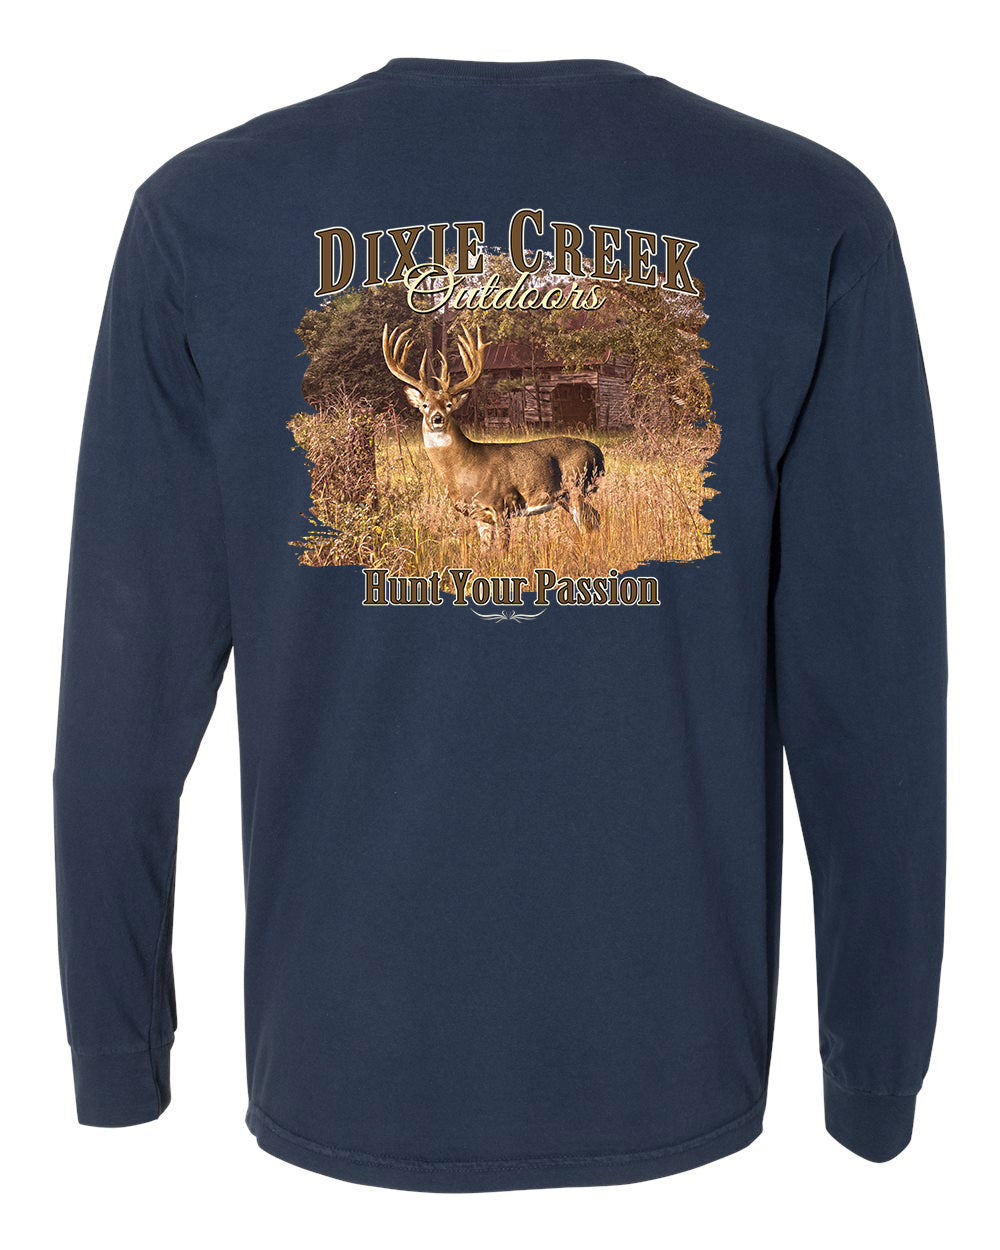 LS Comfort Colors Pocket Tee - DCO Whitetail